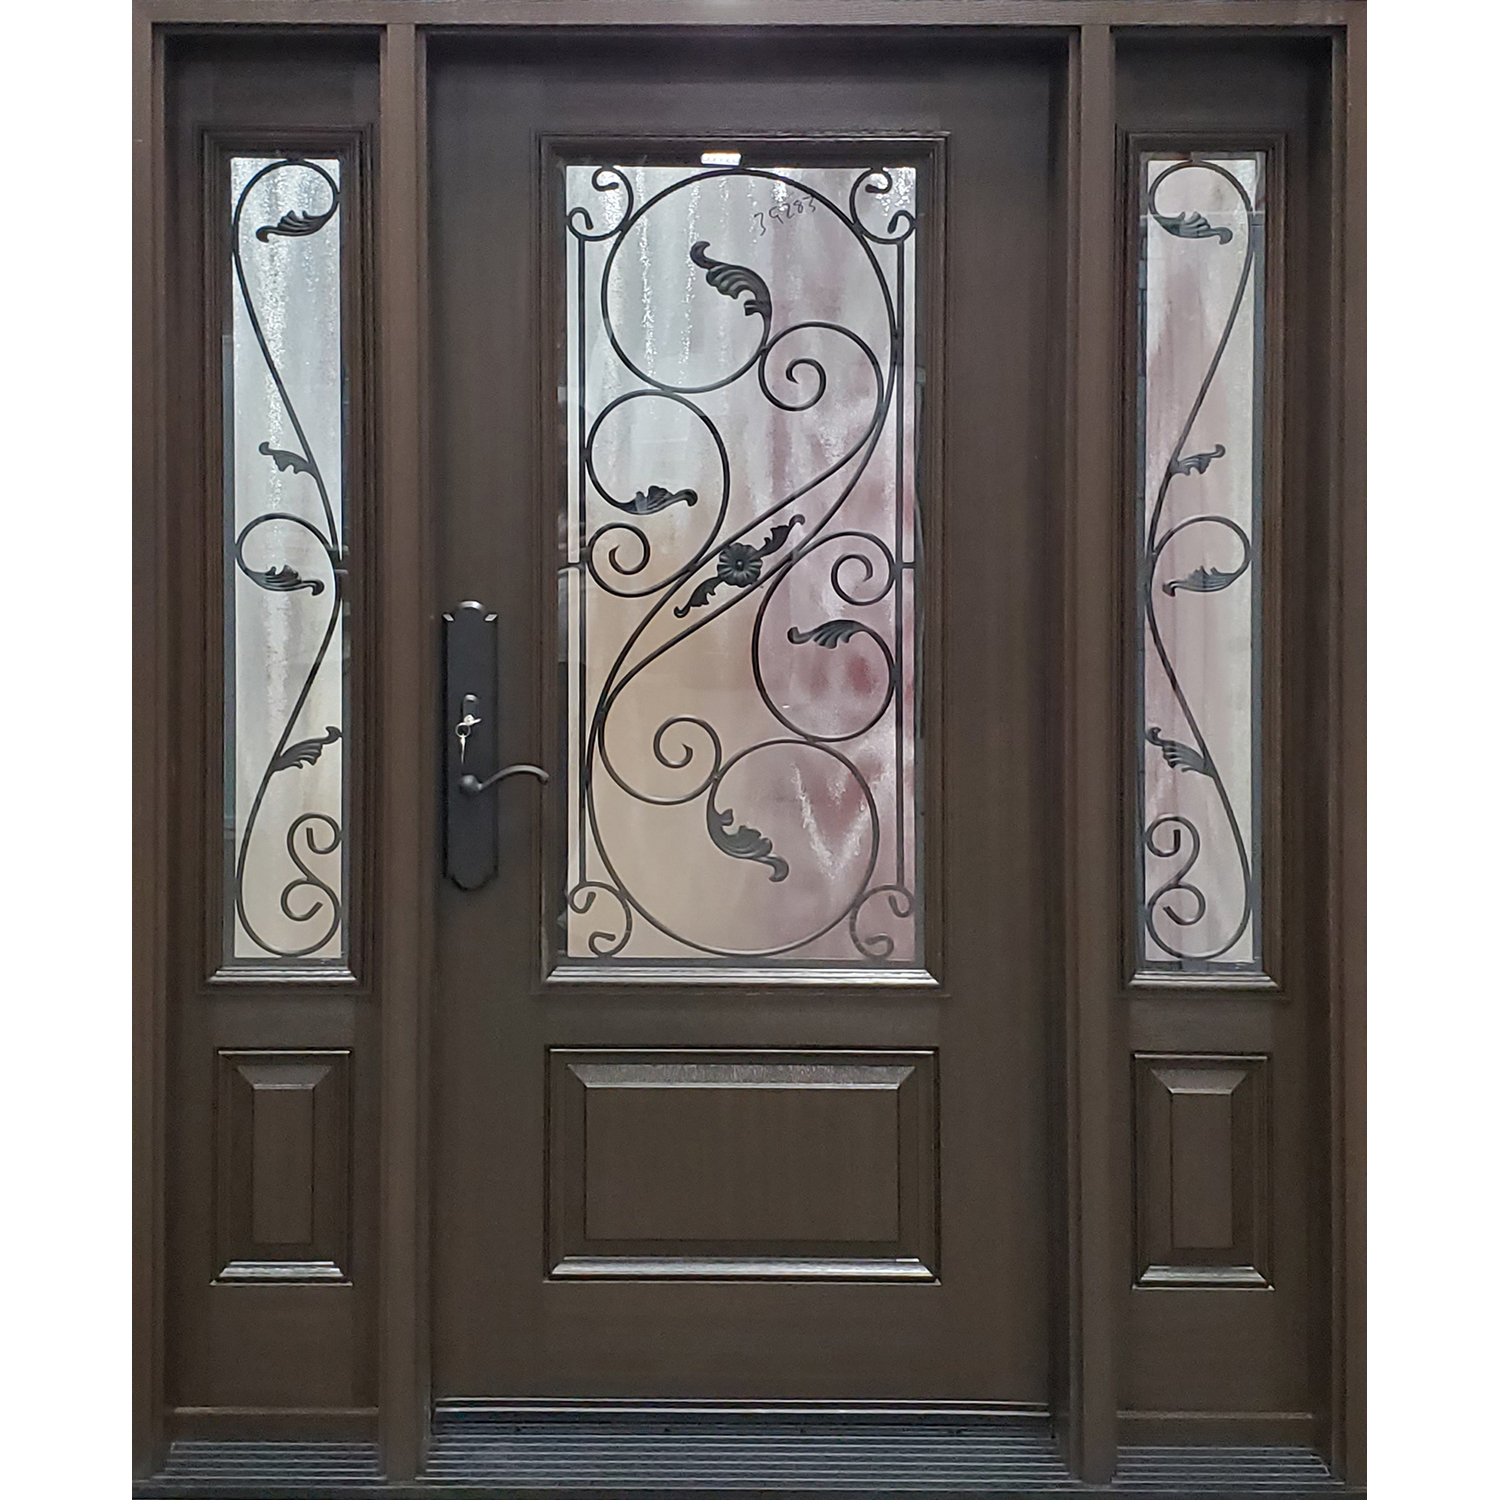 3/4 Serafina Wrought Iron with matching 3/4 sidelites